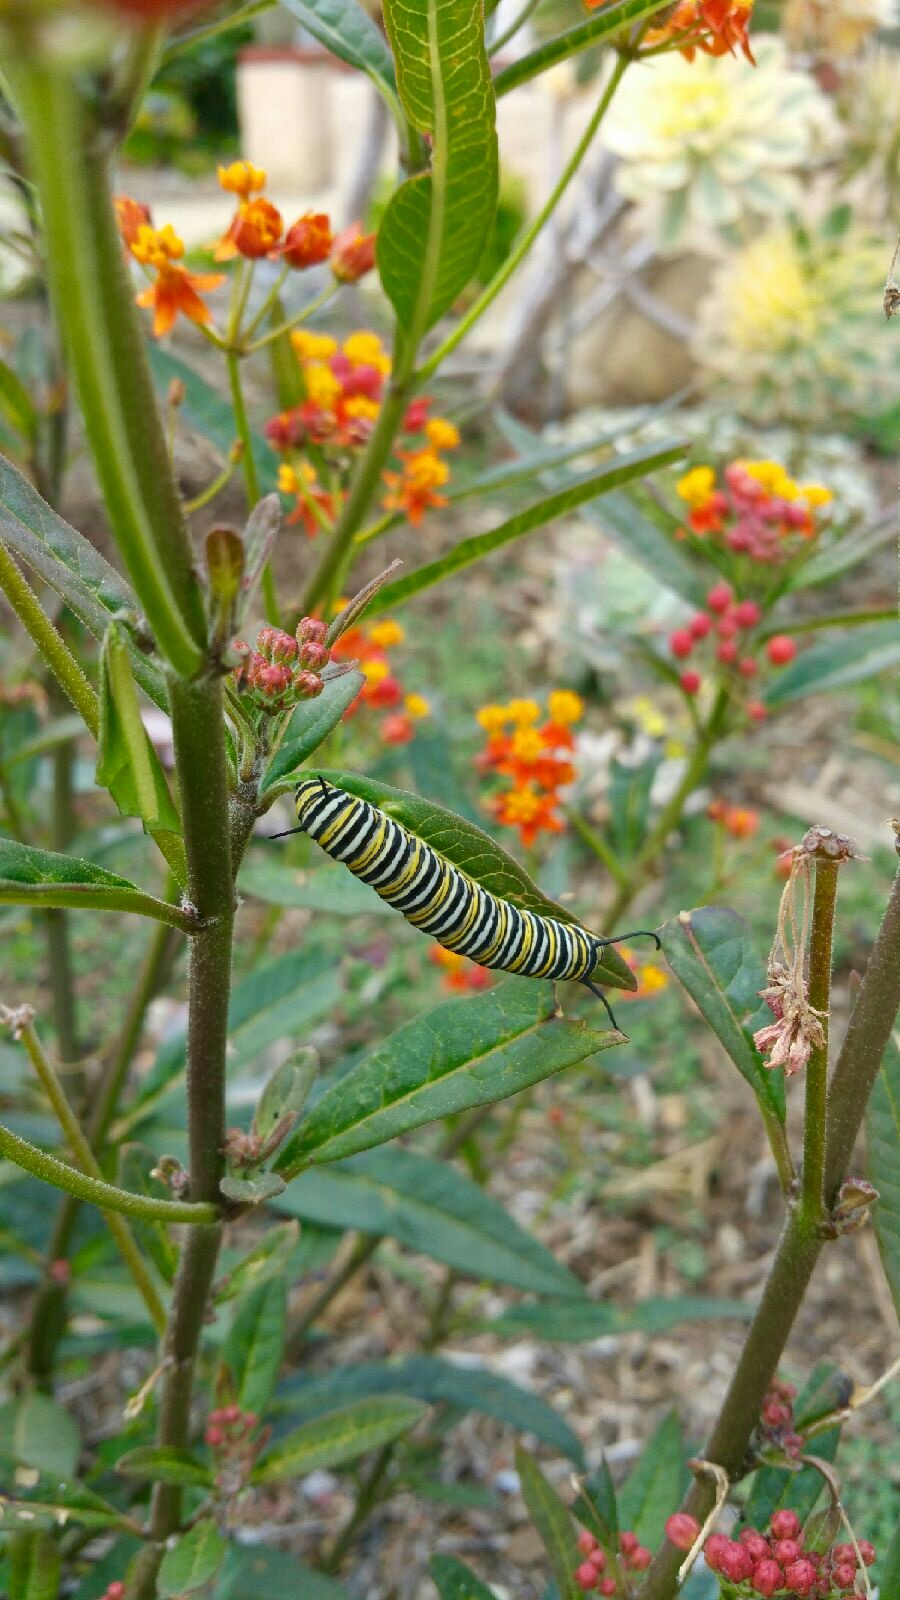 milkweed plant with caterpillar on leaf